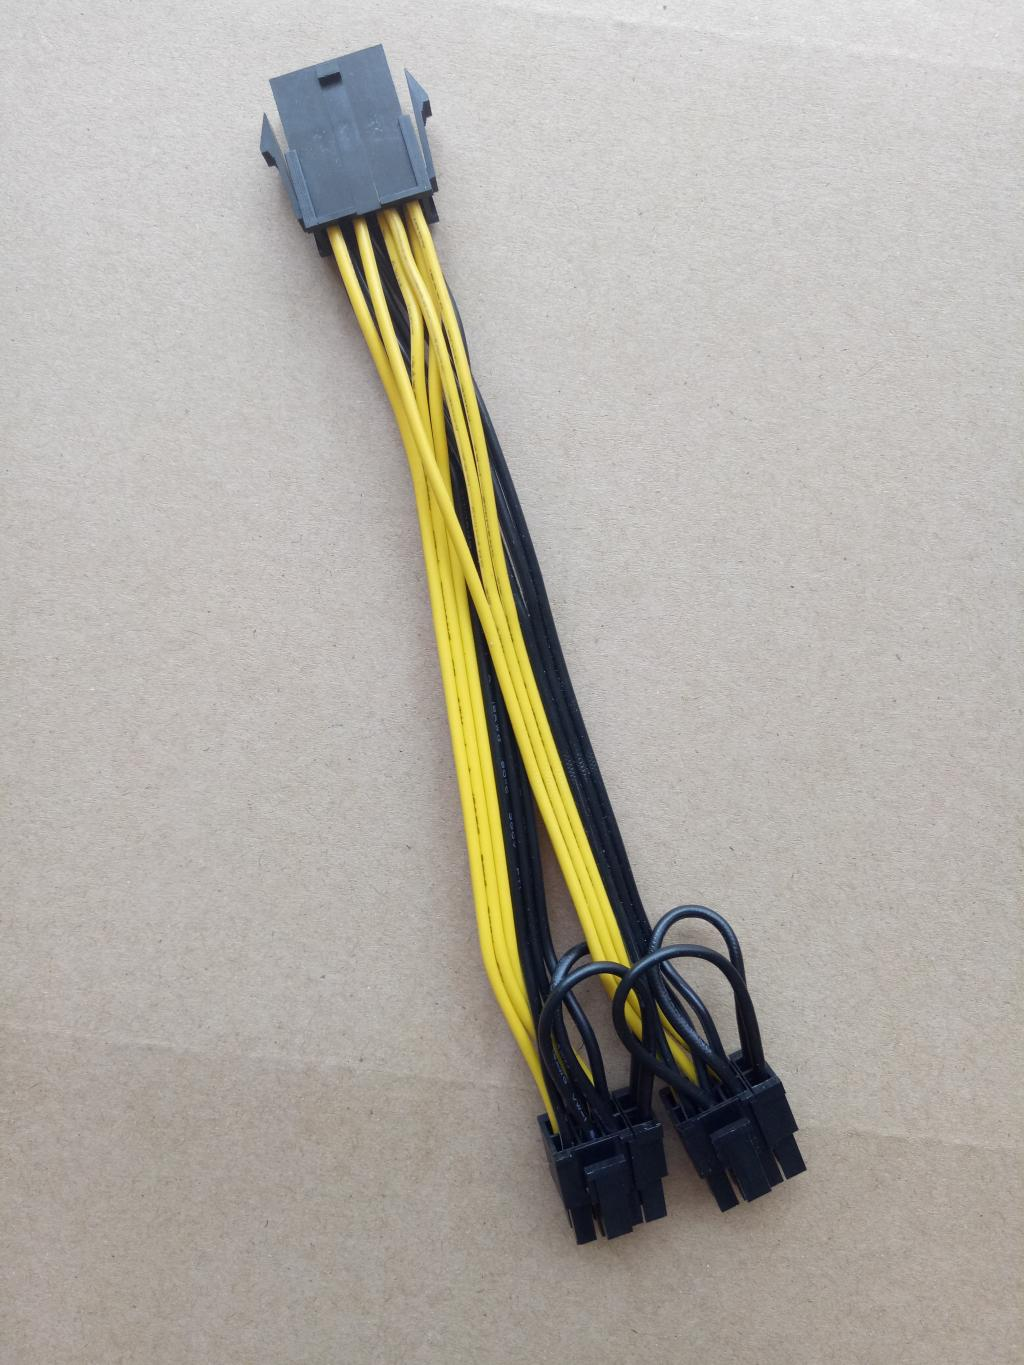 medium resolution of 8pin to 2x 8 pin cable wierd cable configuration is this correct tom s hardware forum